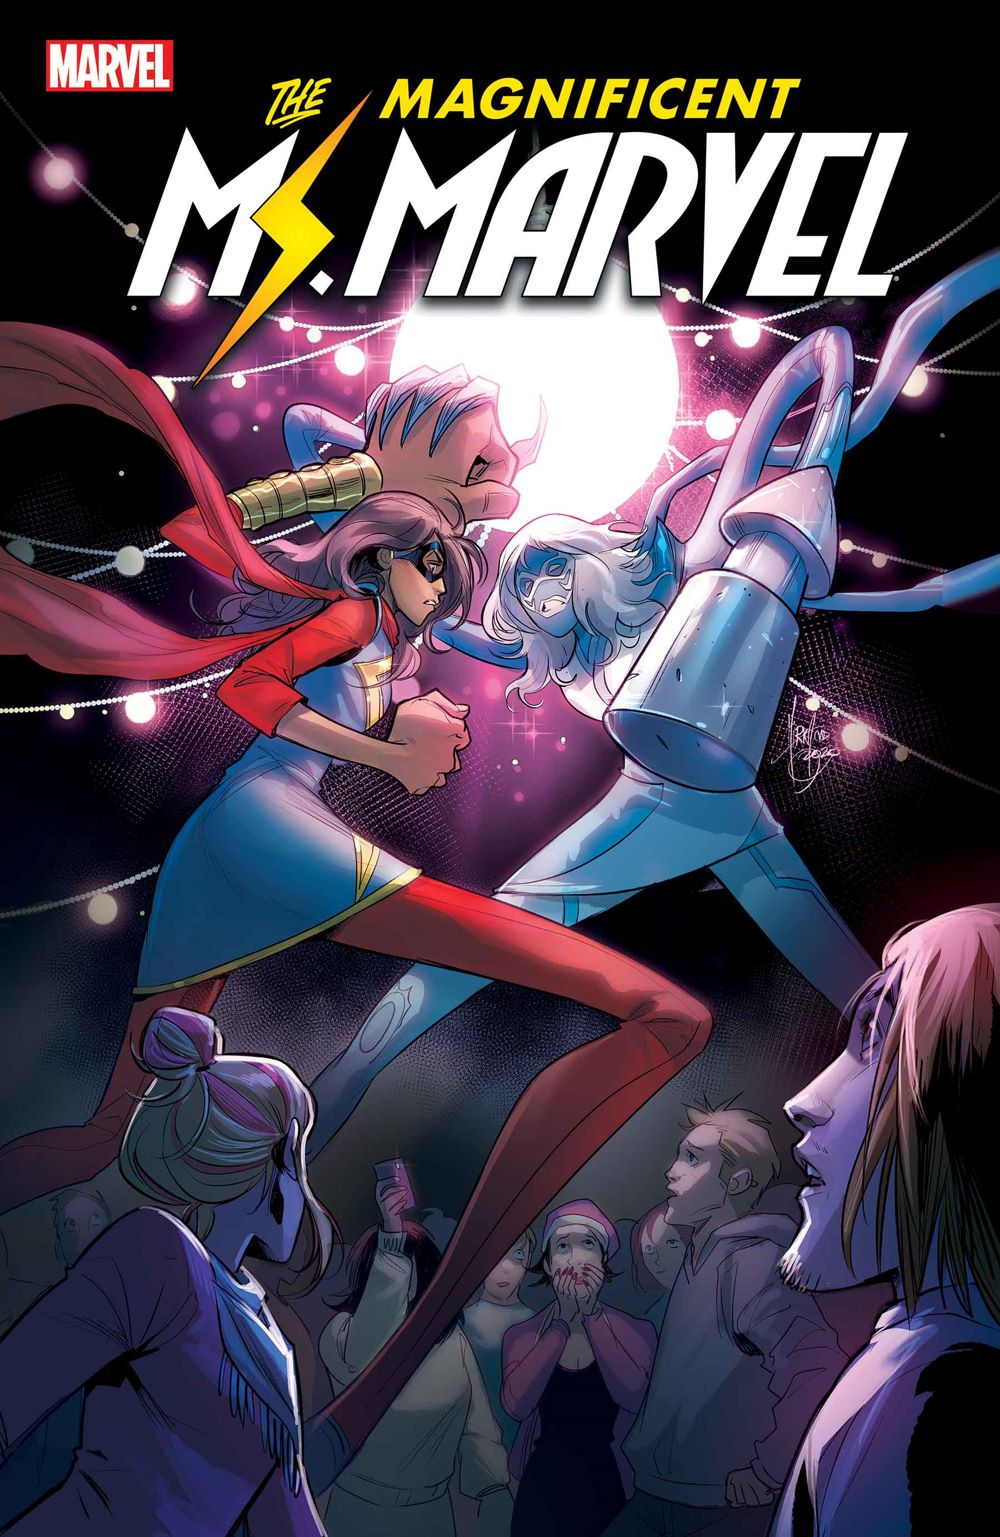 MSMARV2019018_Cov-1 THE MAGNIFICENT MS. MARVEL #18 to be extra large finale issue